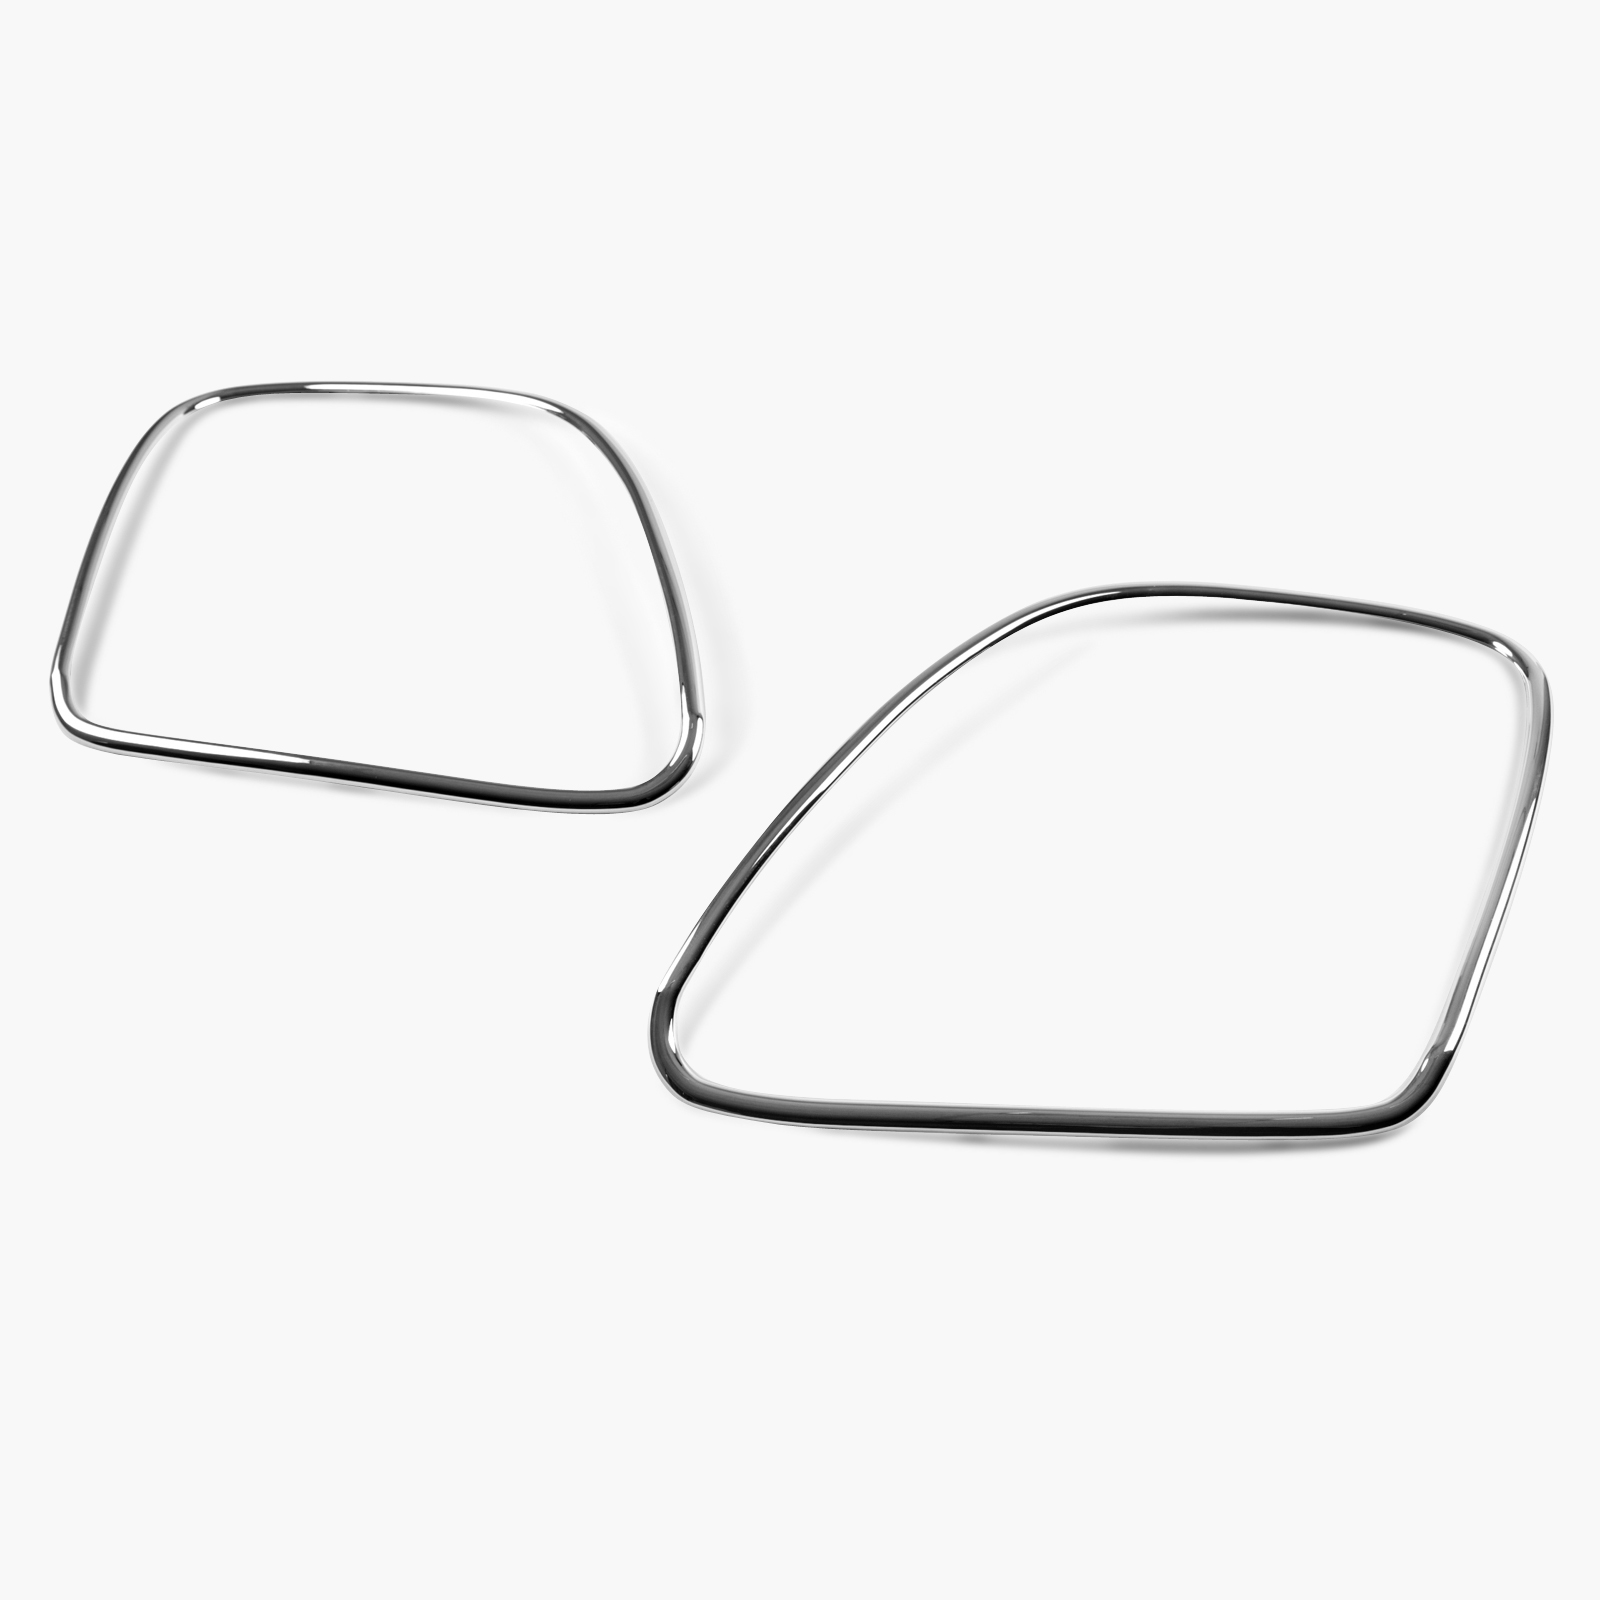 Tail Light Lamp Bezel Cover Chrome Trim For Bentley